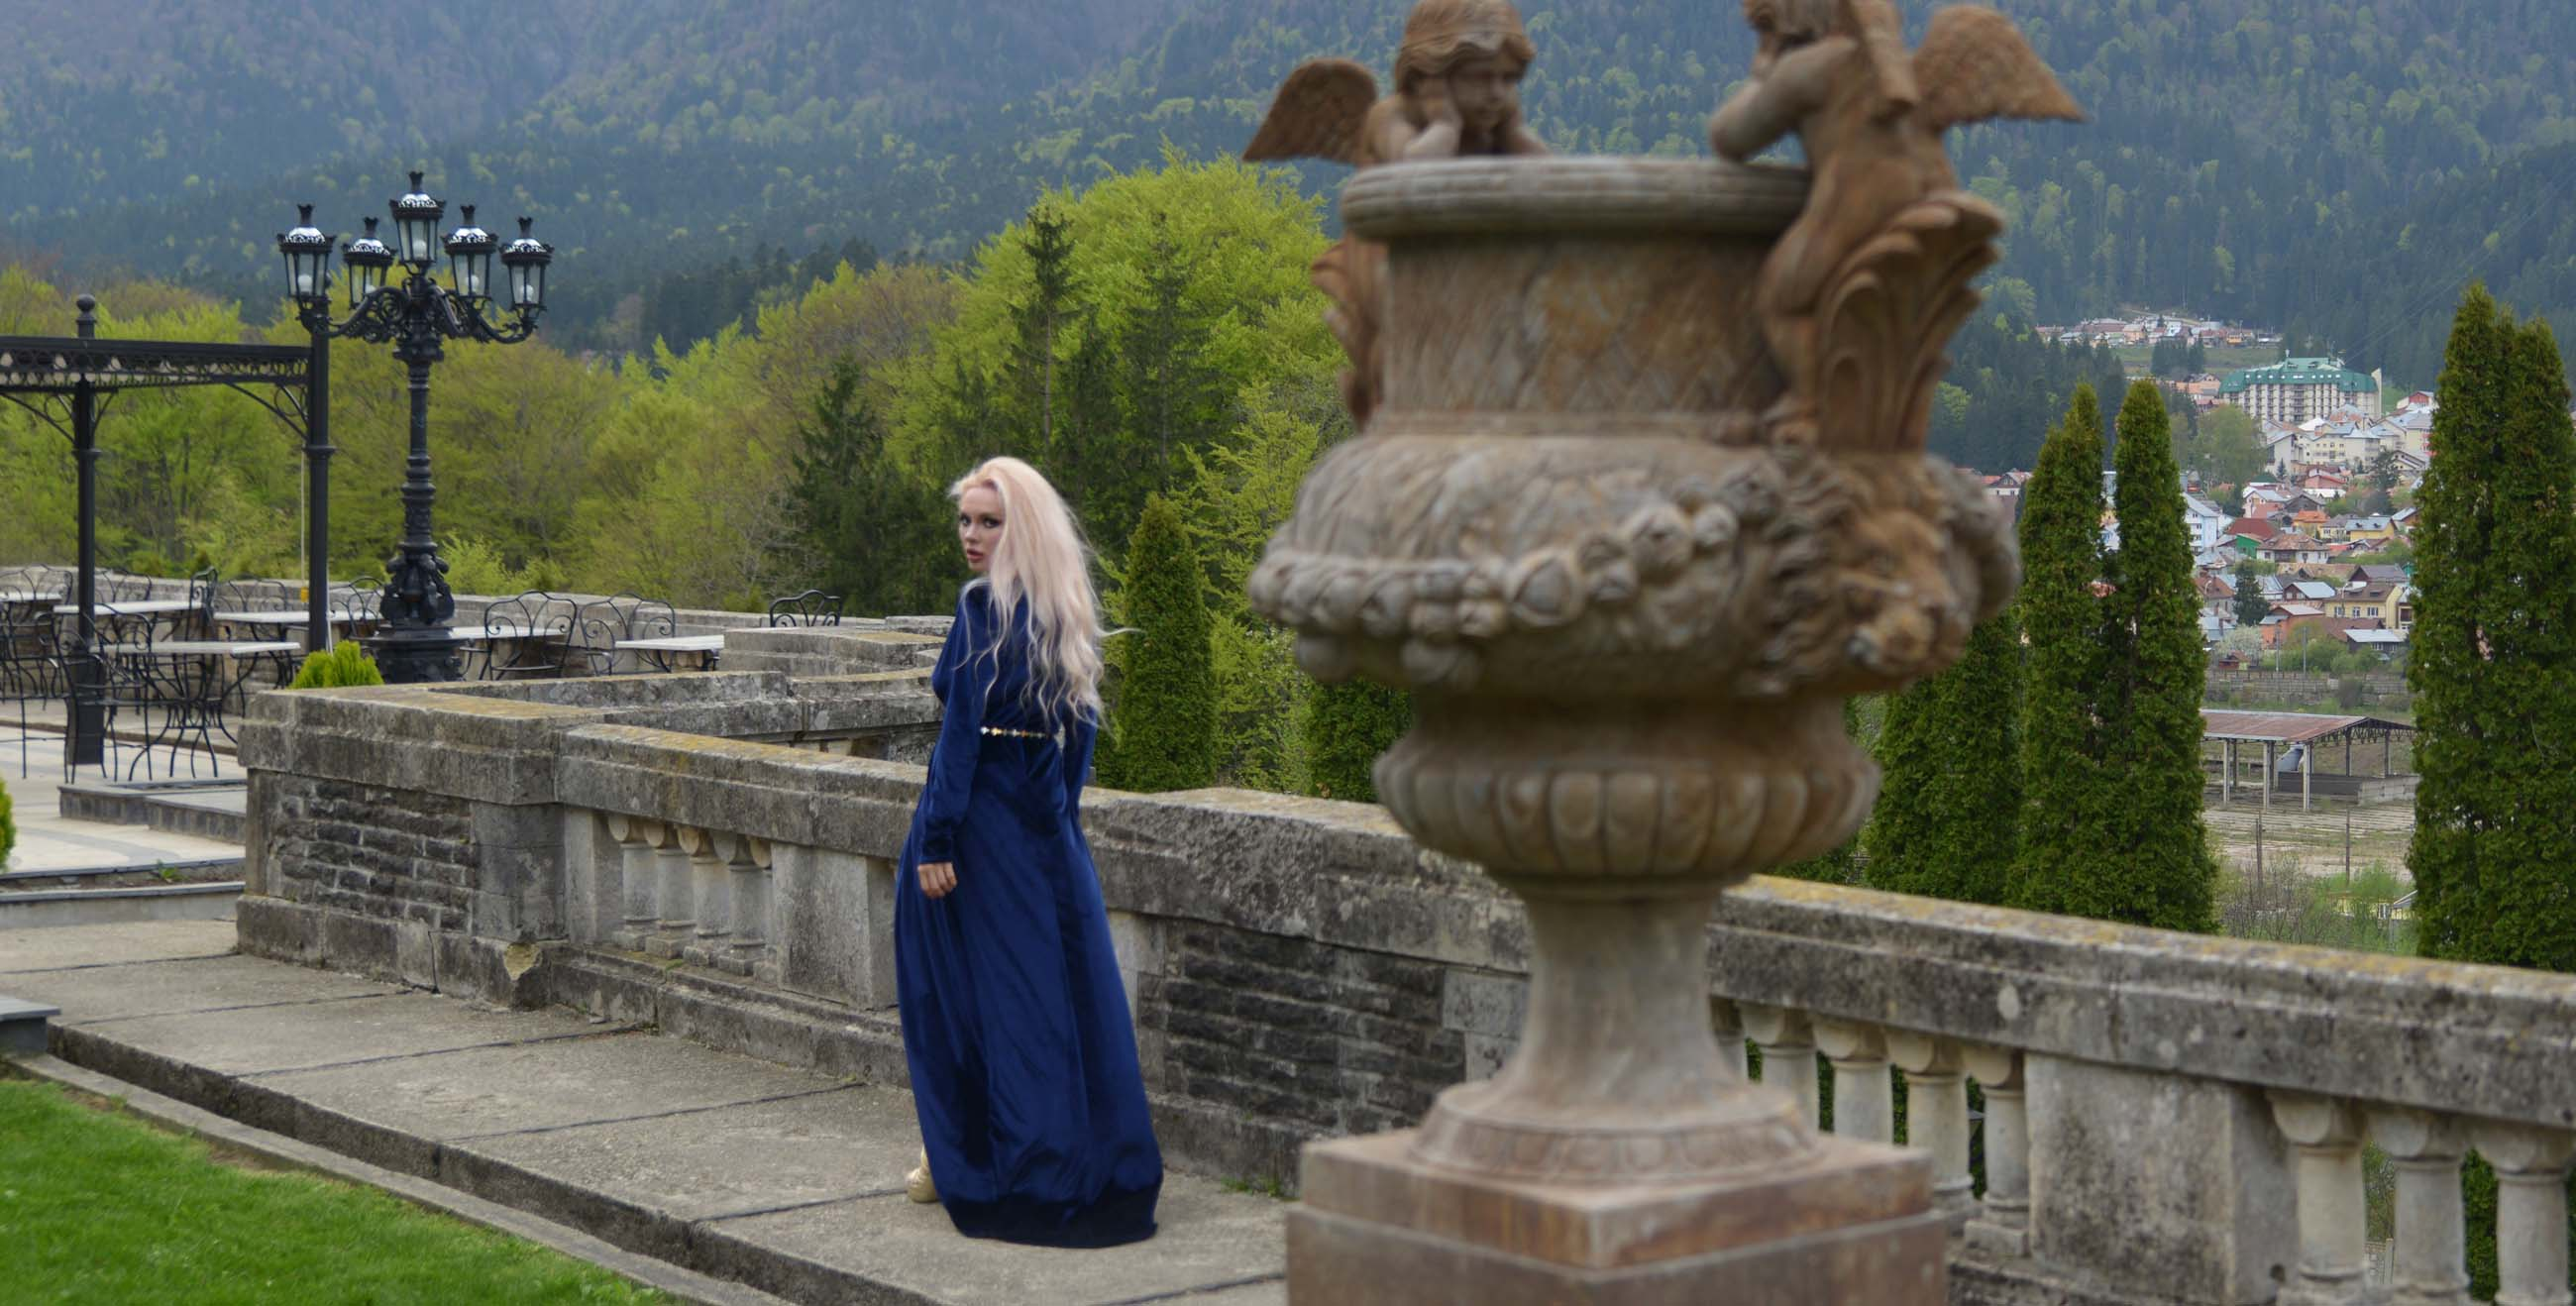 21_cantacuzino_palace_blue_royal_velvet_dress